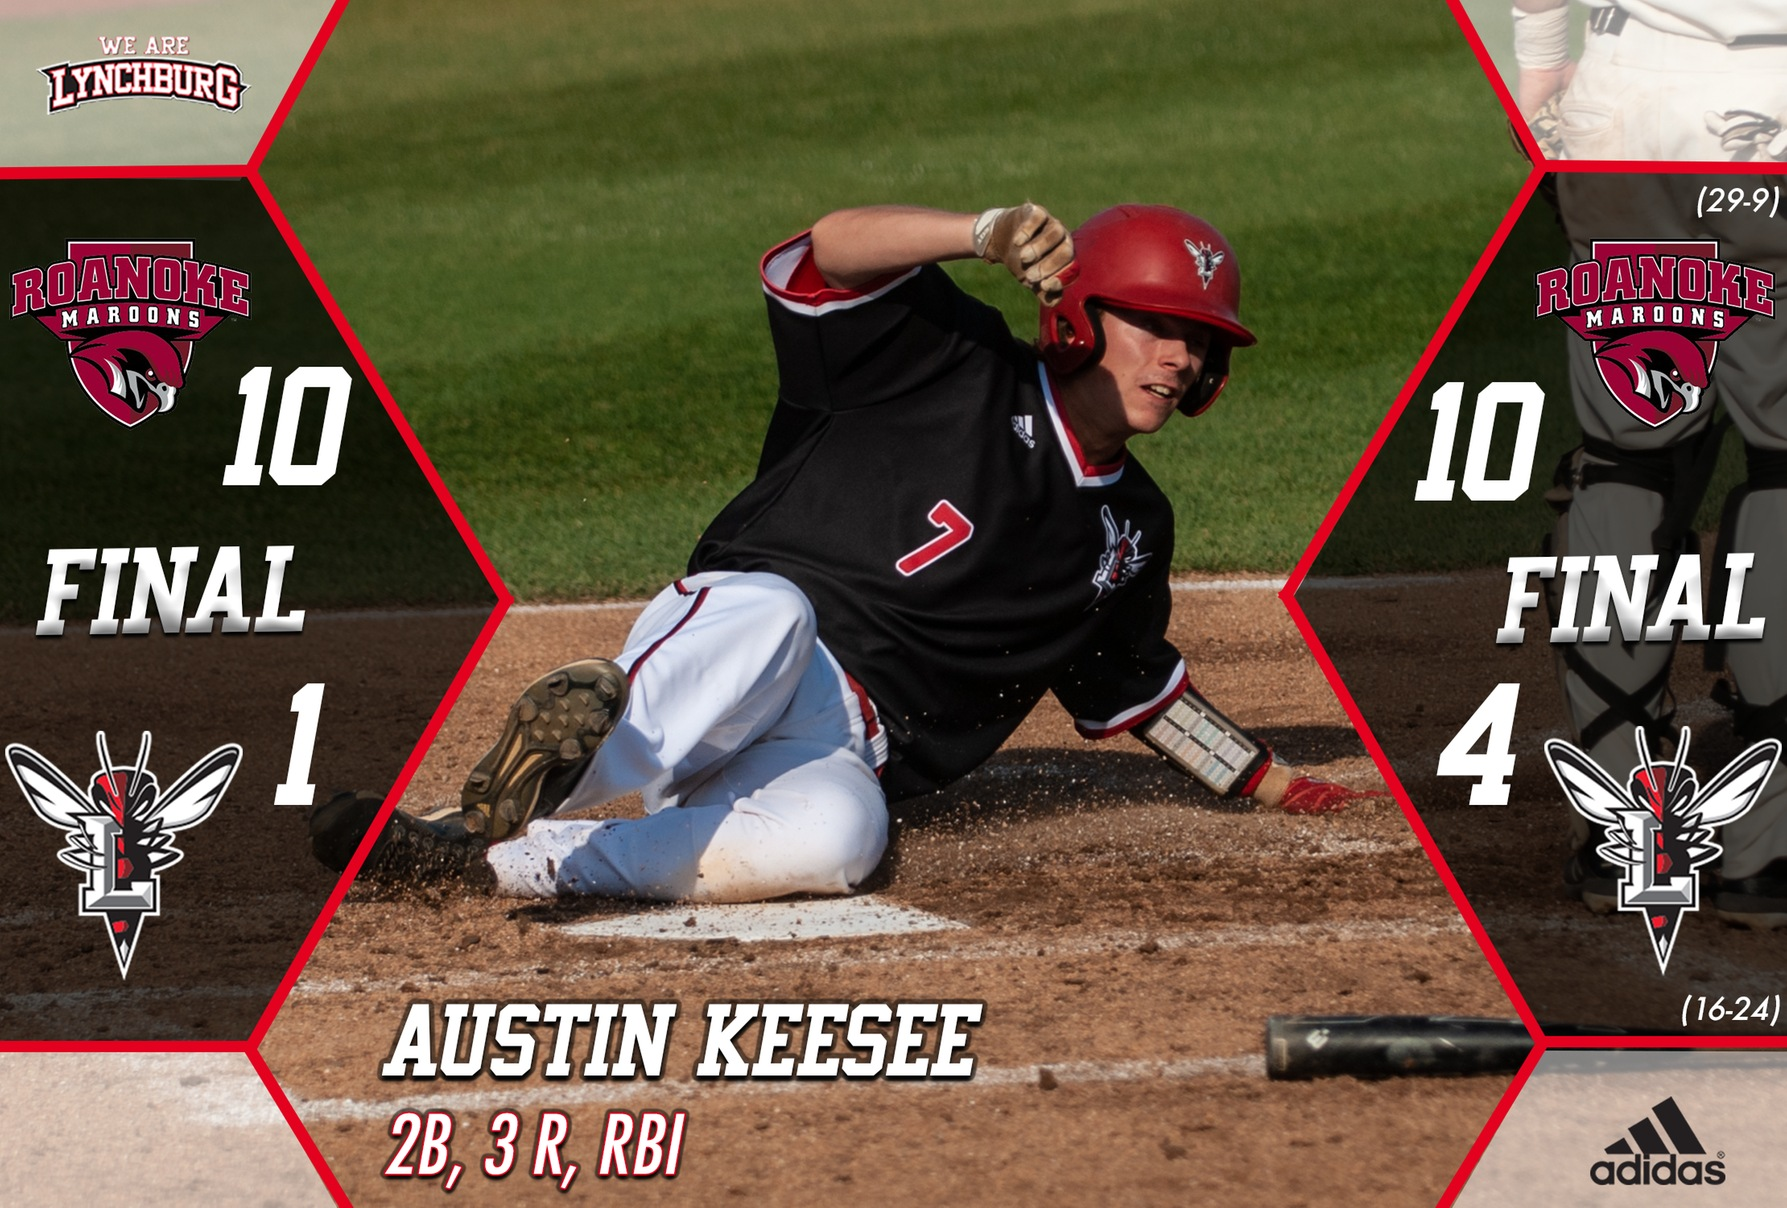 Austin Keesee slides into home plate.